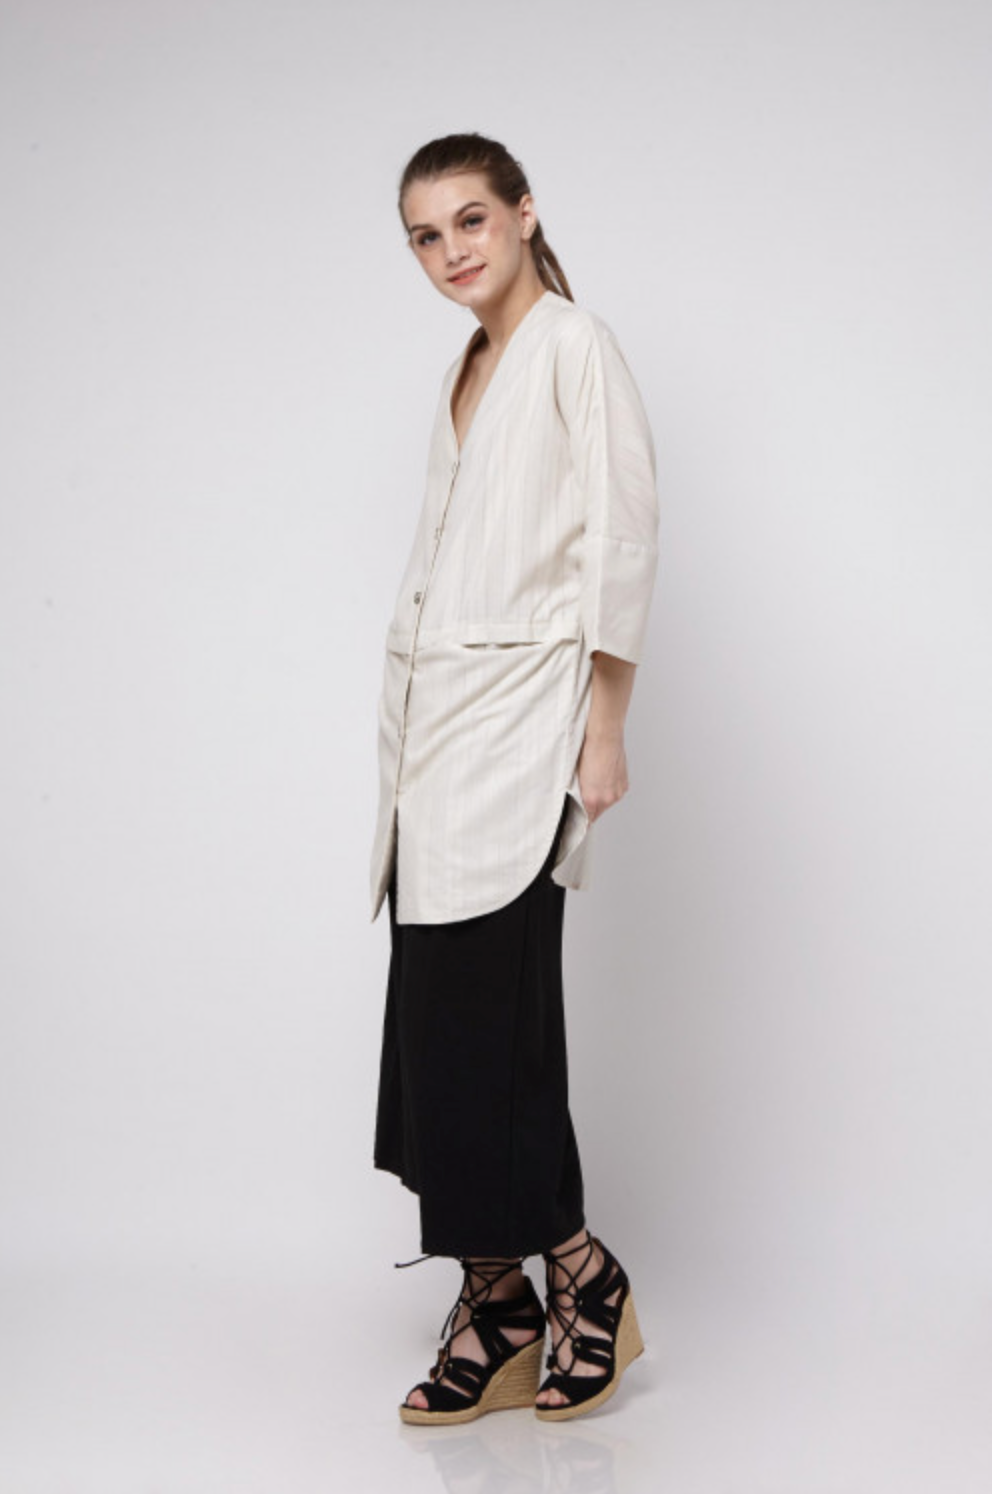 Nude Oversized Shirt - Imaji Studio